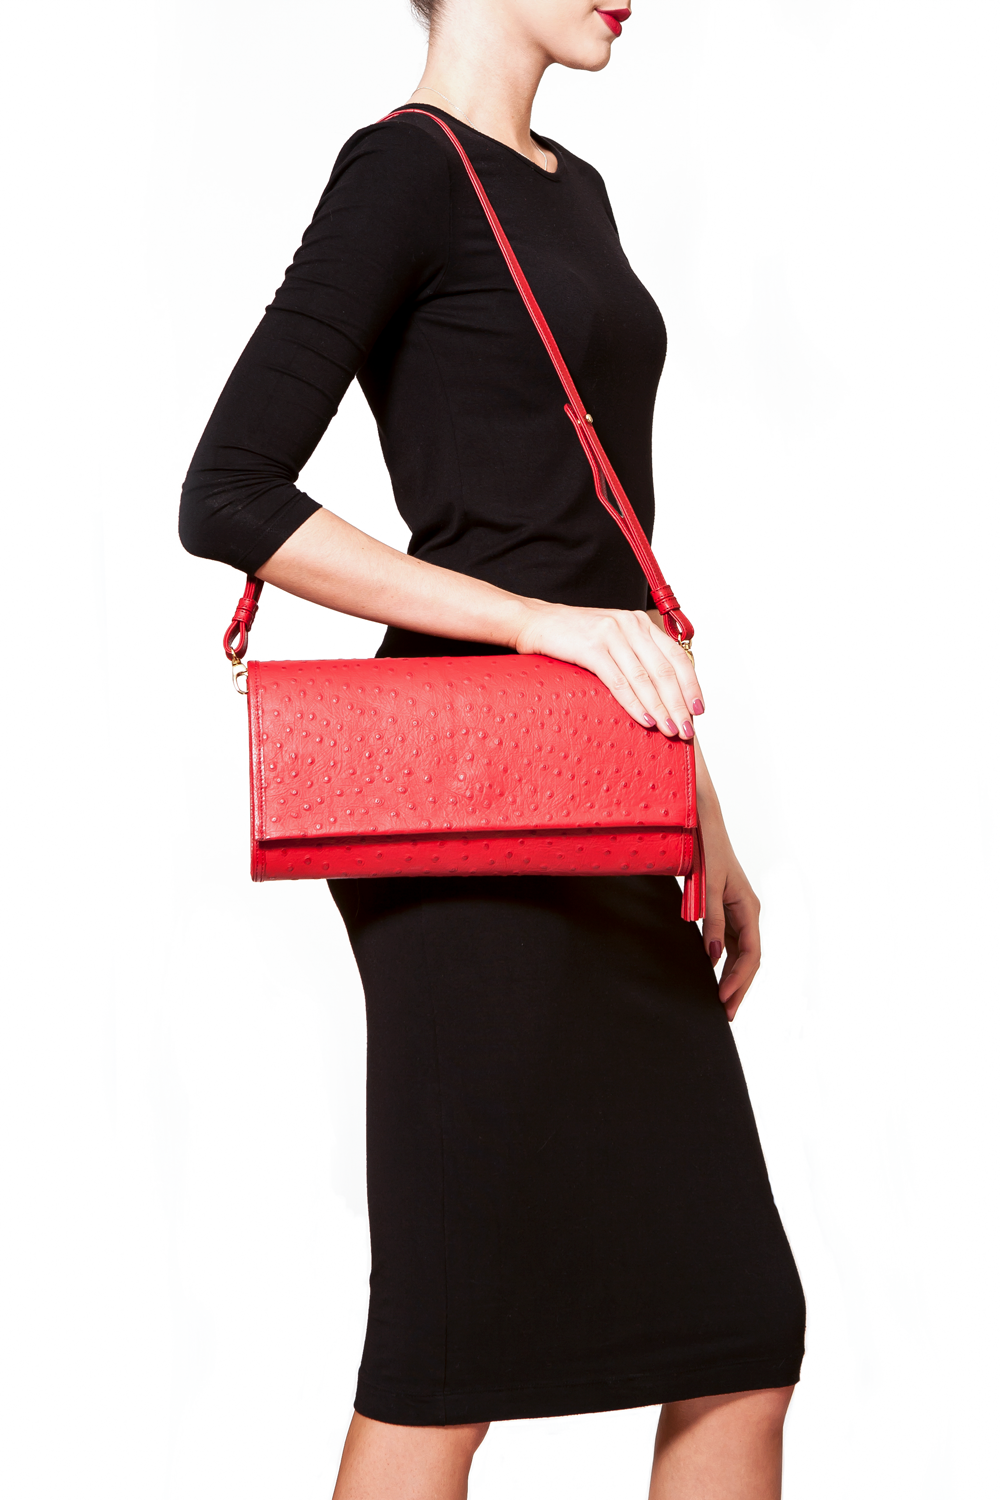 'Cara' Envelope Clutch in Red Ostrich Print Leather | Mel Boteri | Shoulder Strap On Model